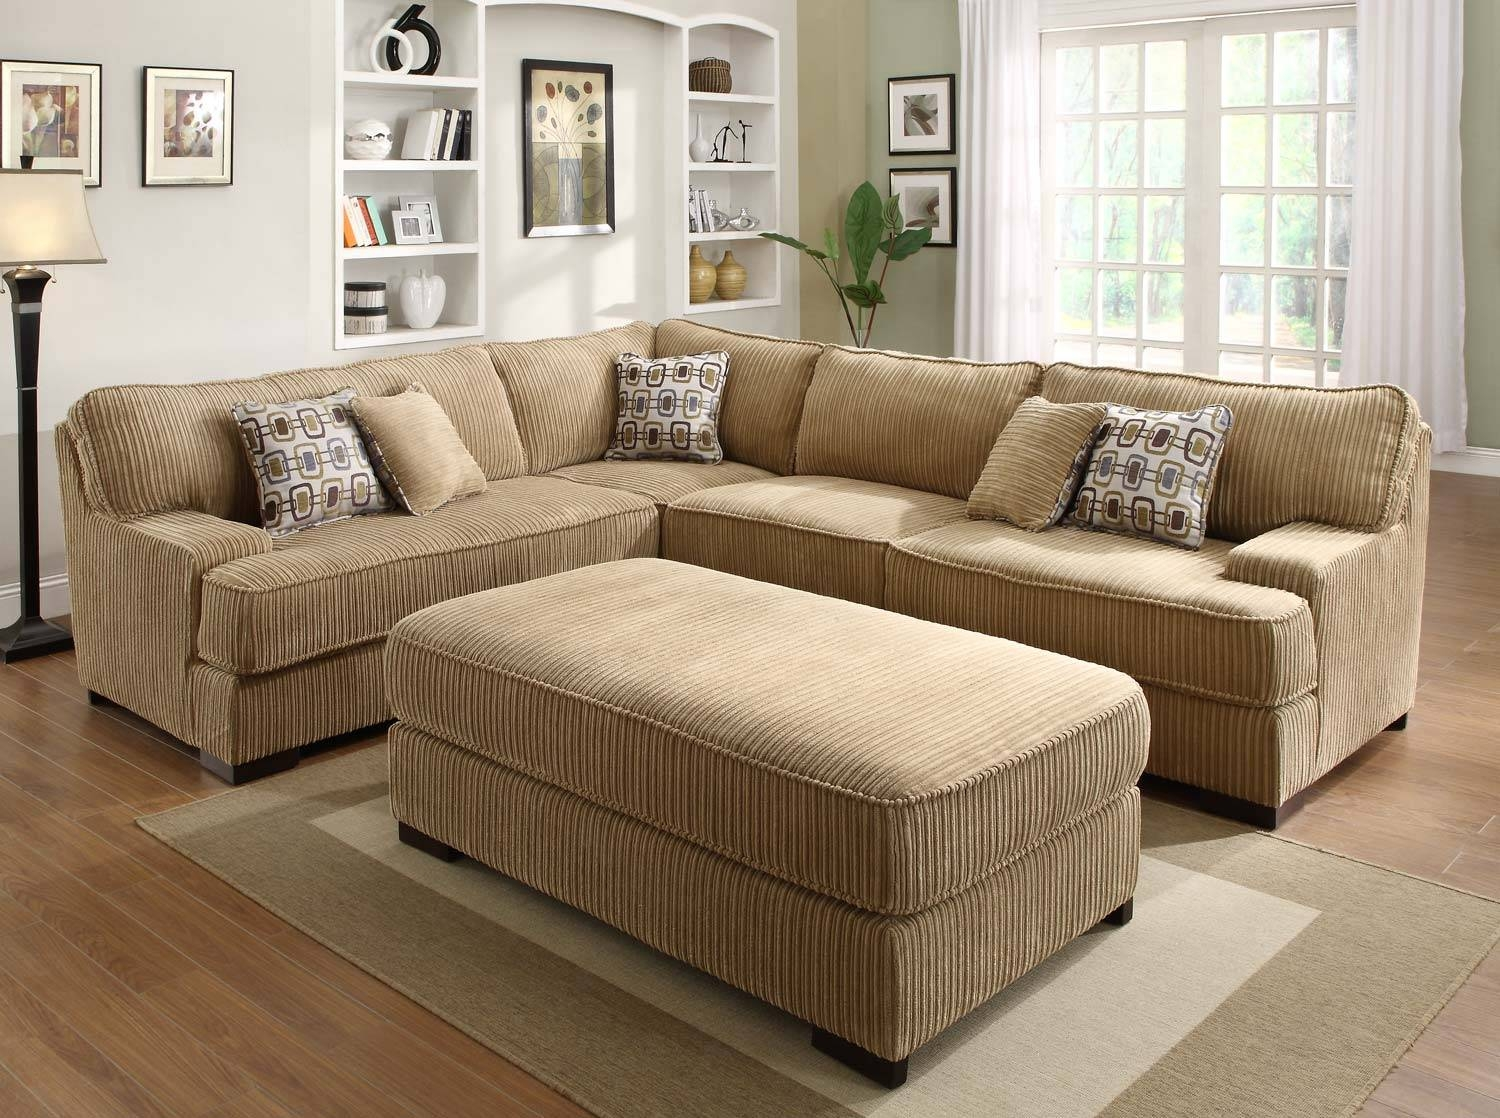 2019 Latest Camel Colored Sectional Sofa